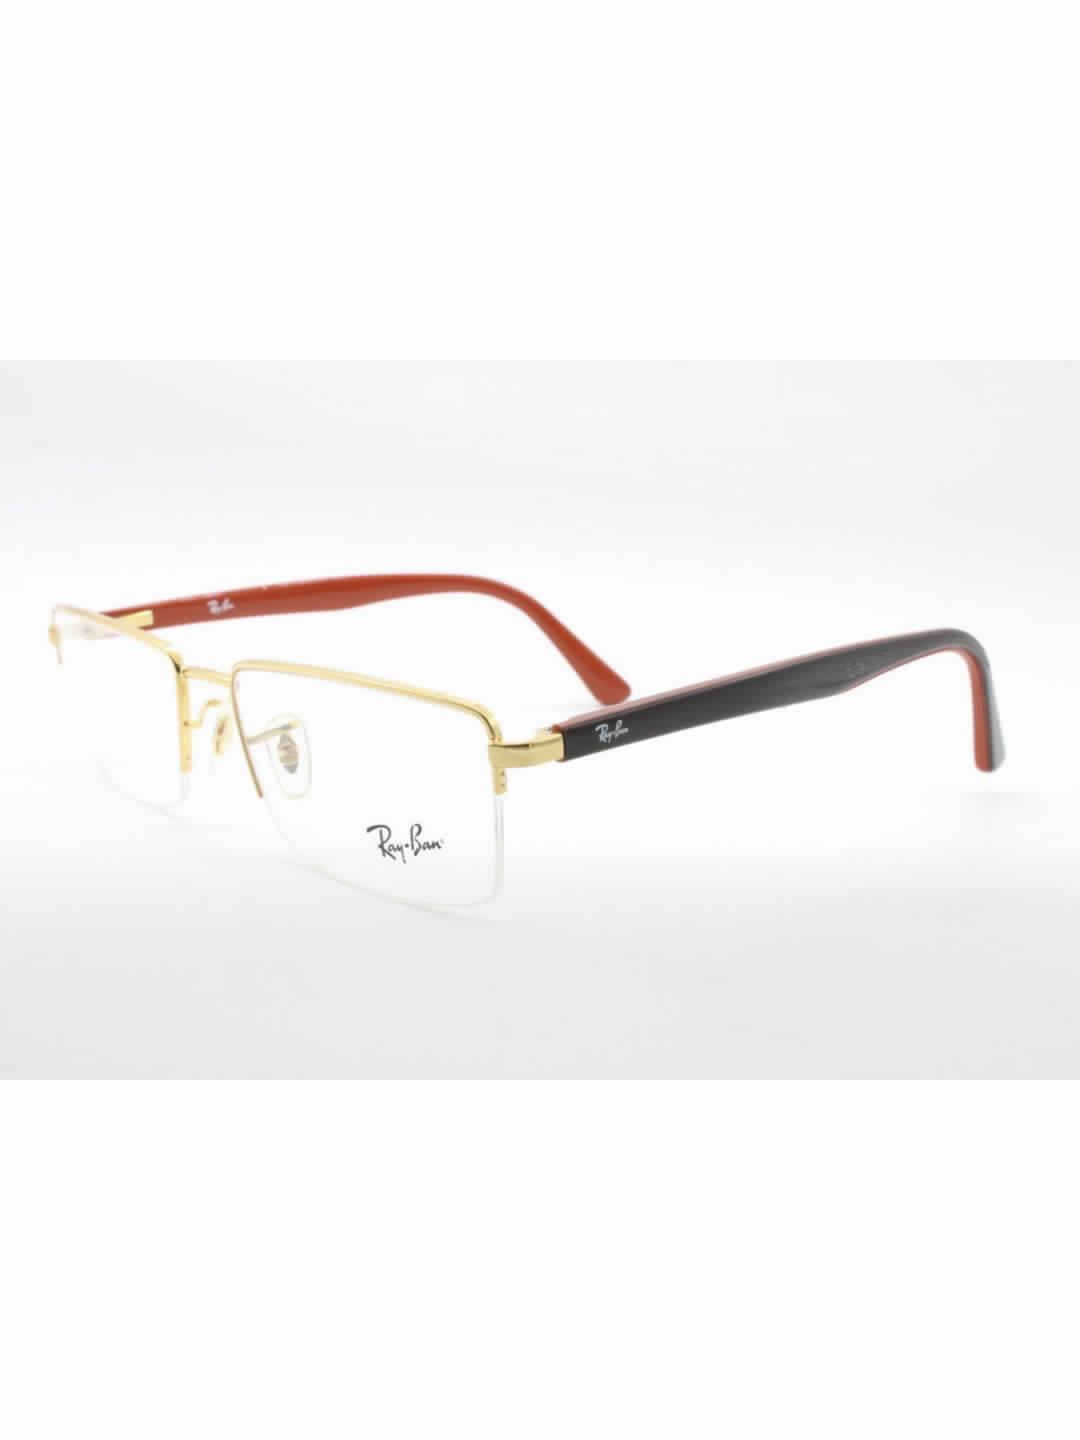 RayBan RB 6324 I 2500 Golden Rectangle Half Frame With Metal